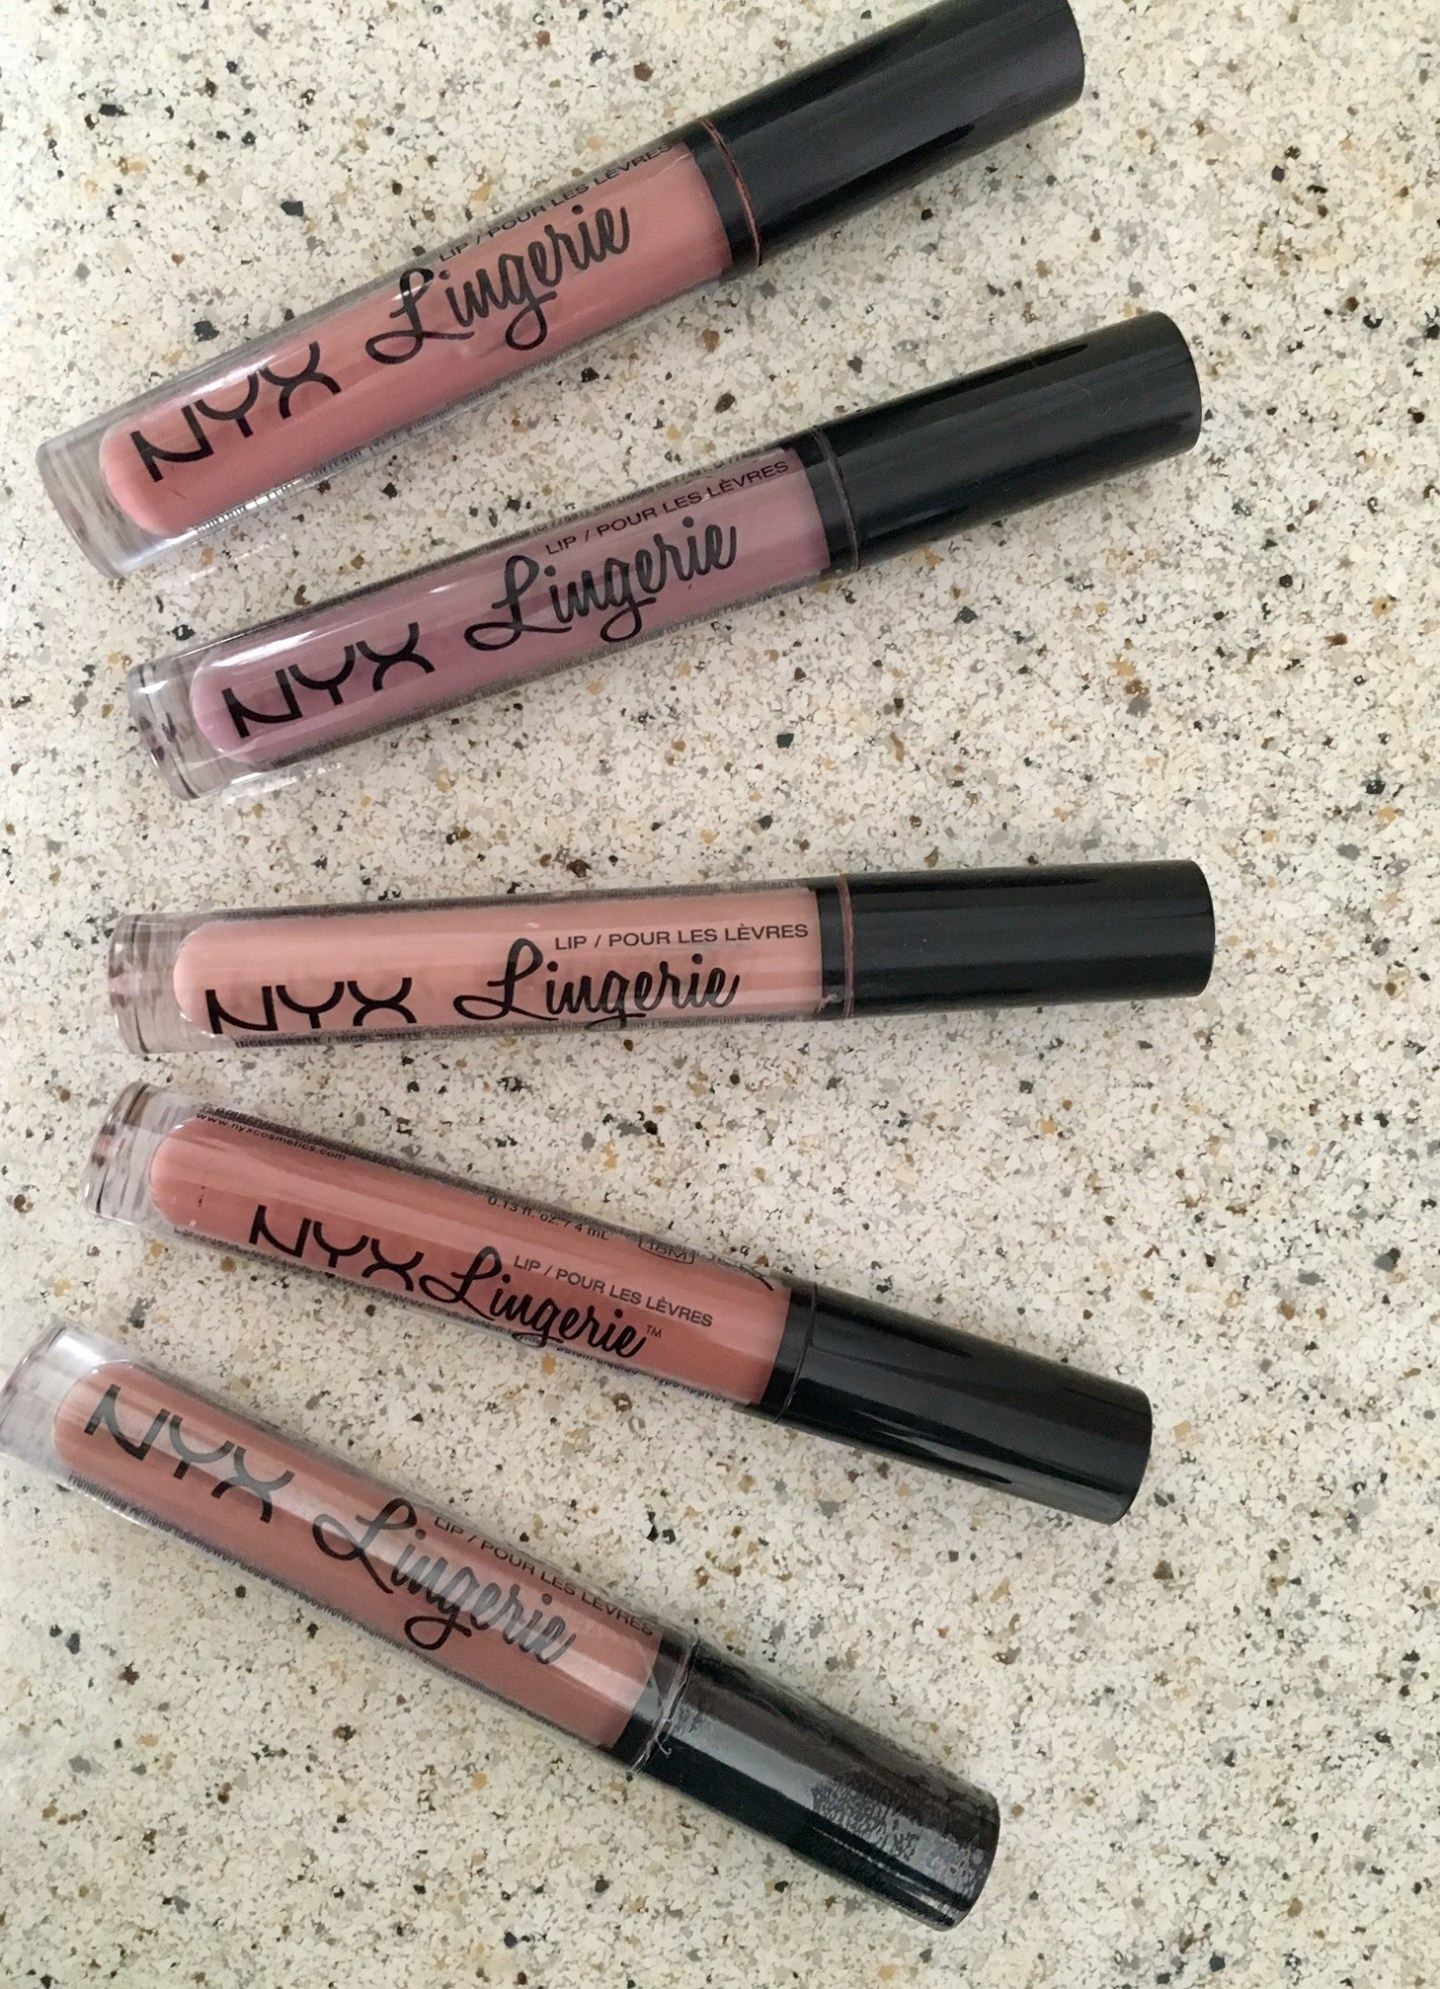 NYX Lingerie Review & Swatches!